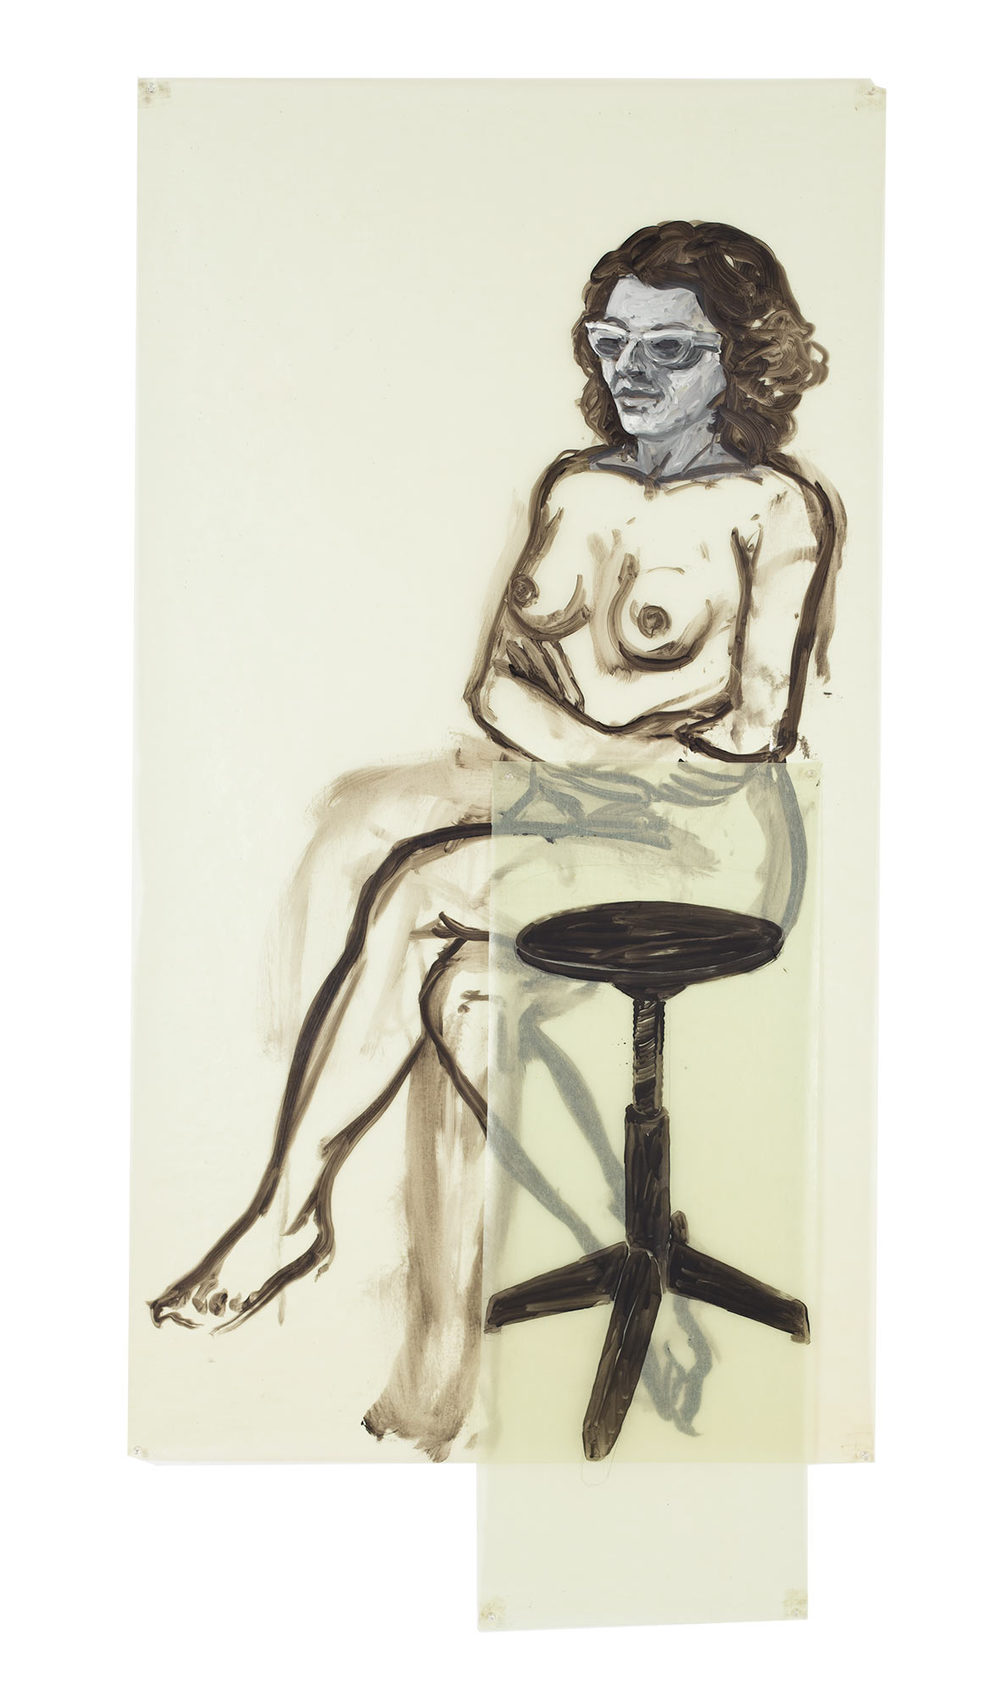 Flo, 1978. Oil on Glassine. 33 x 68 in. (84 x 173 cm.)